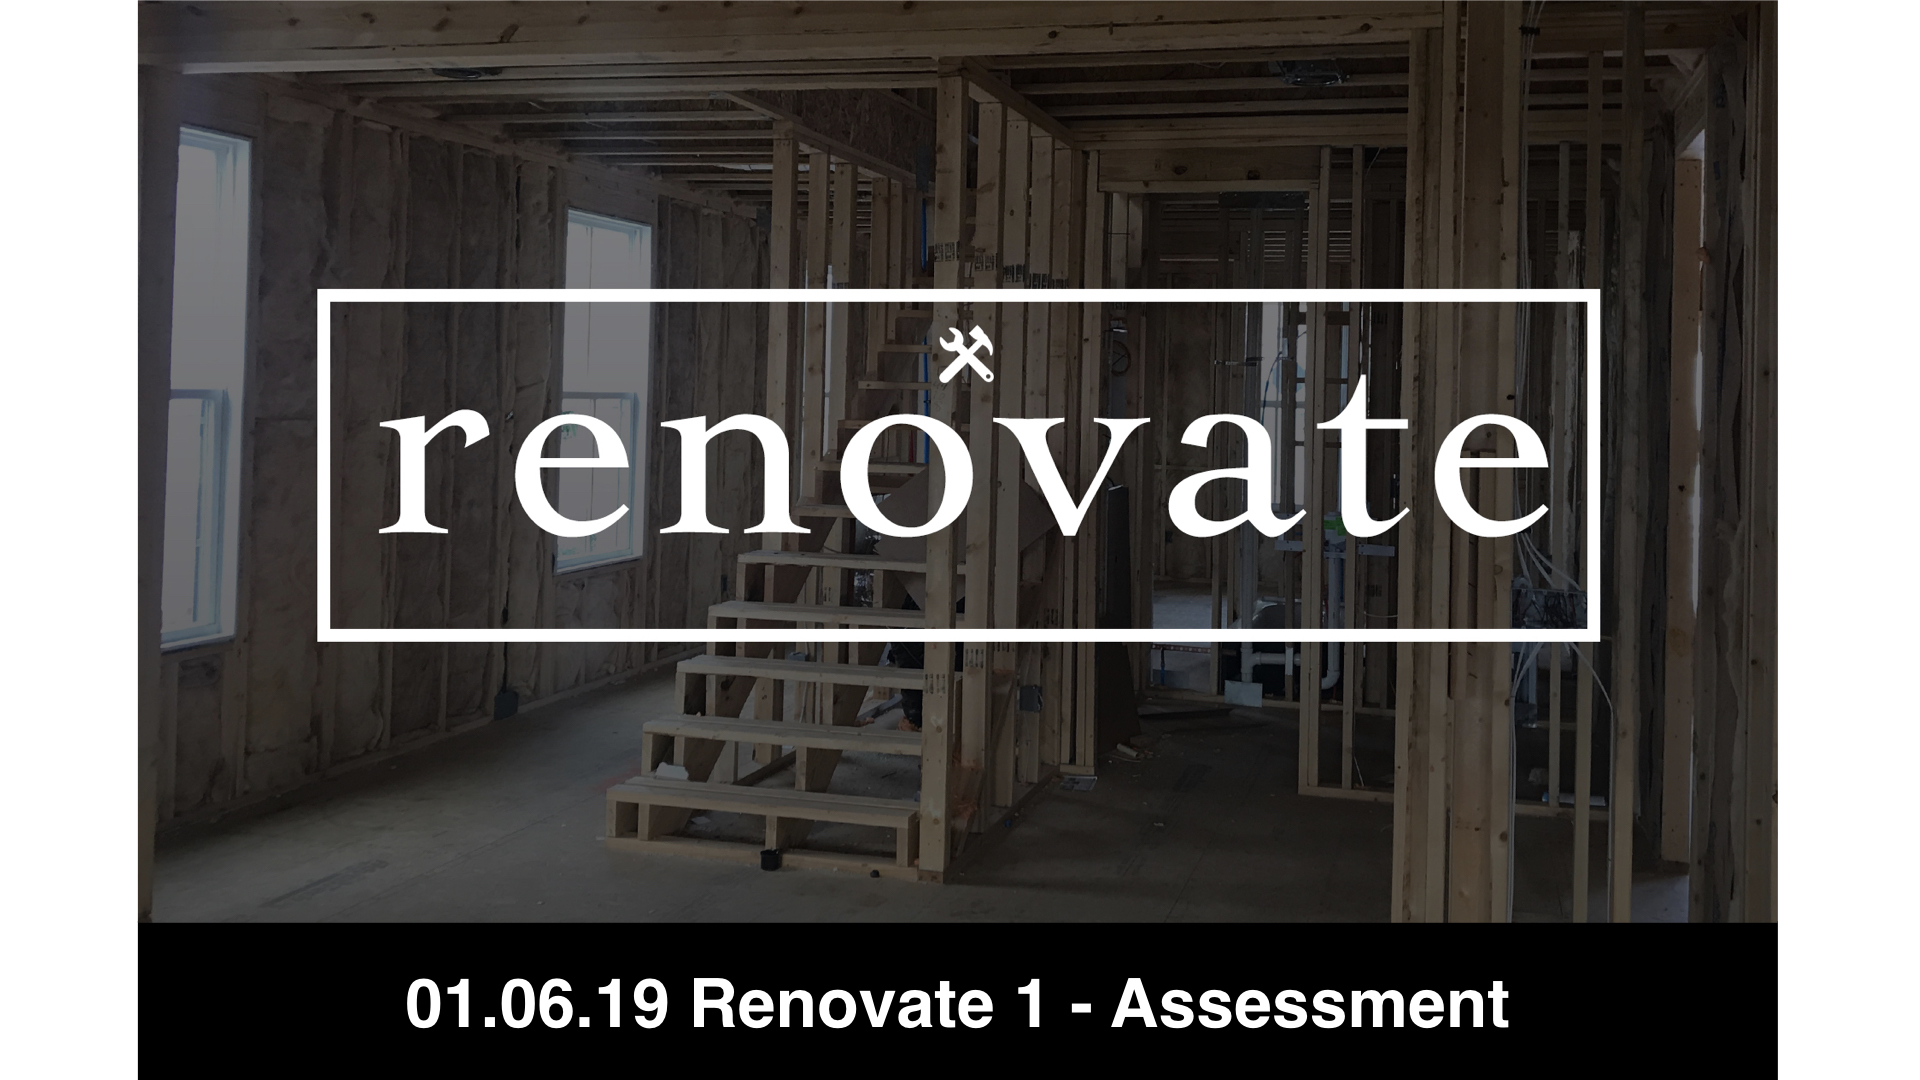 01.06.19 Renovate 1 - Assessment